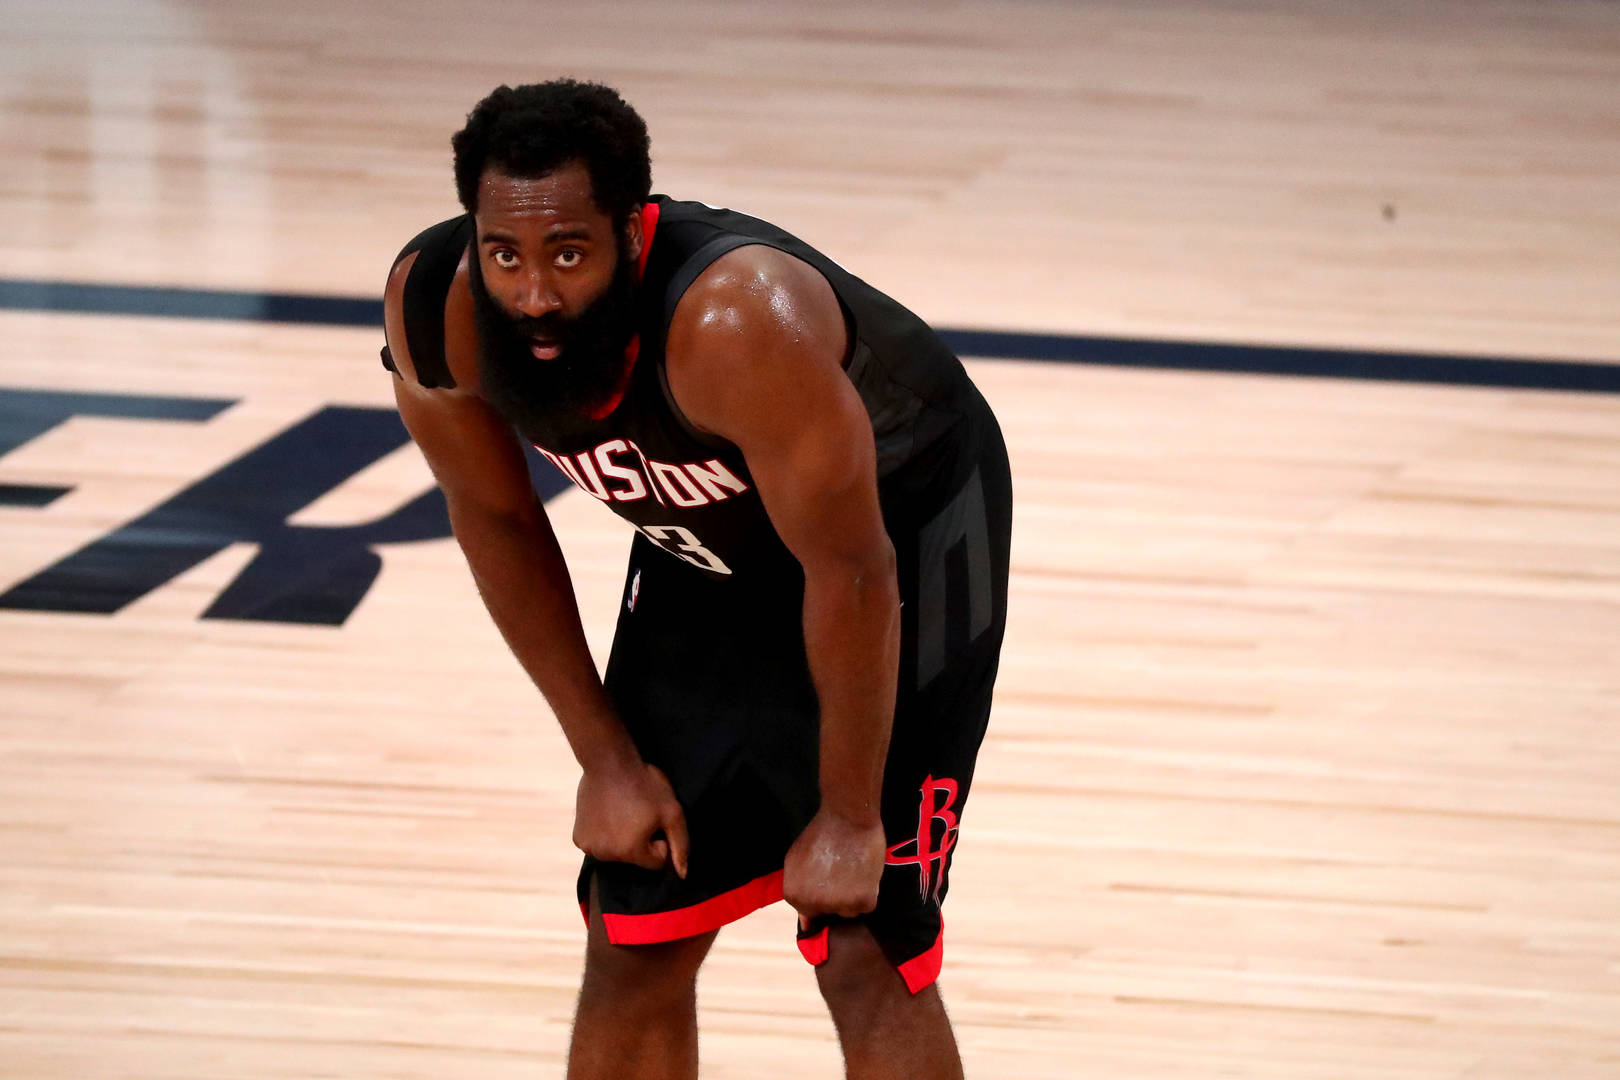 Nets rising to top of Harden's list of possible trade destinations